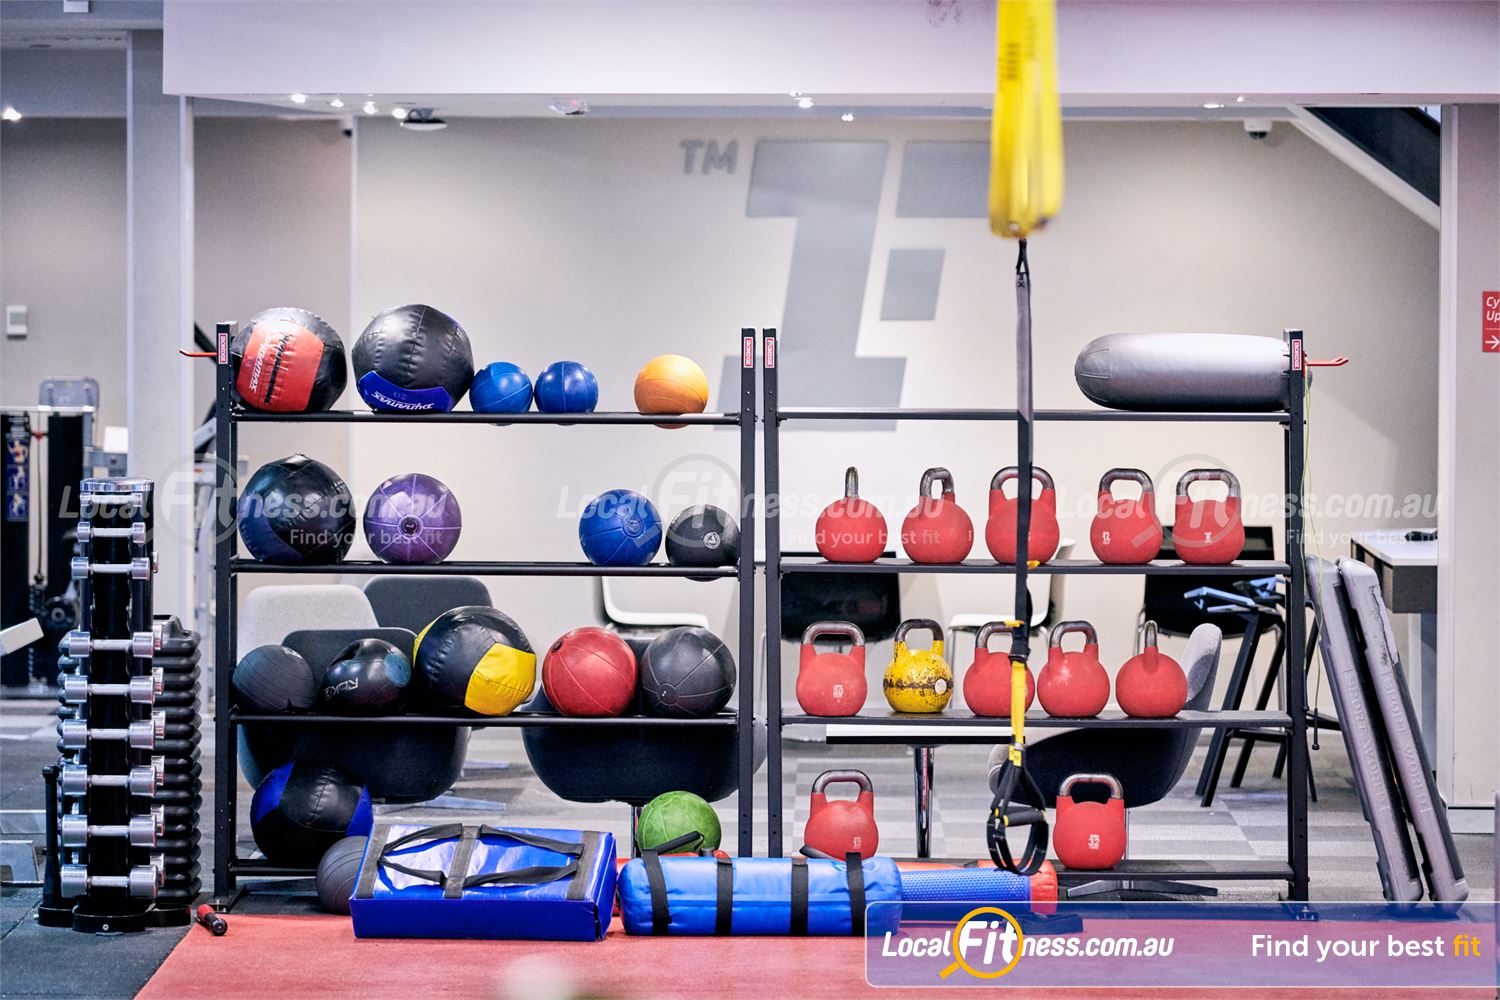 Fitness First Victoria Gardens Richmond Our functional training area is fully equipped with kettlebells, wall balls and more.